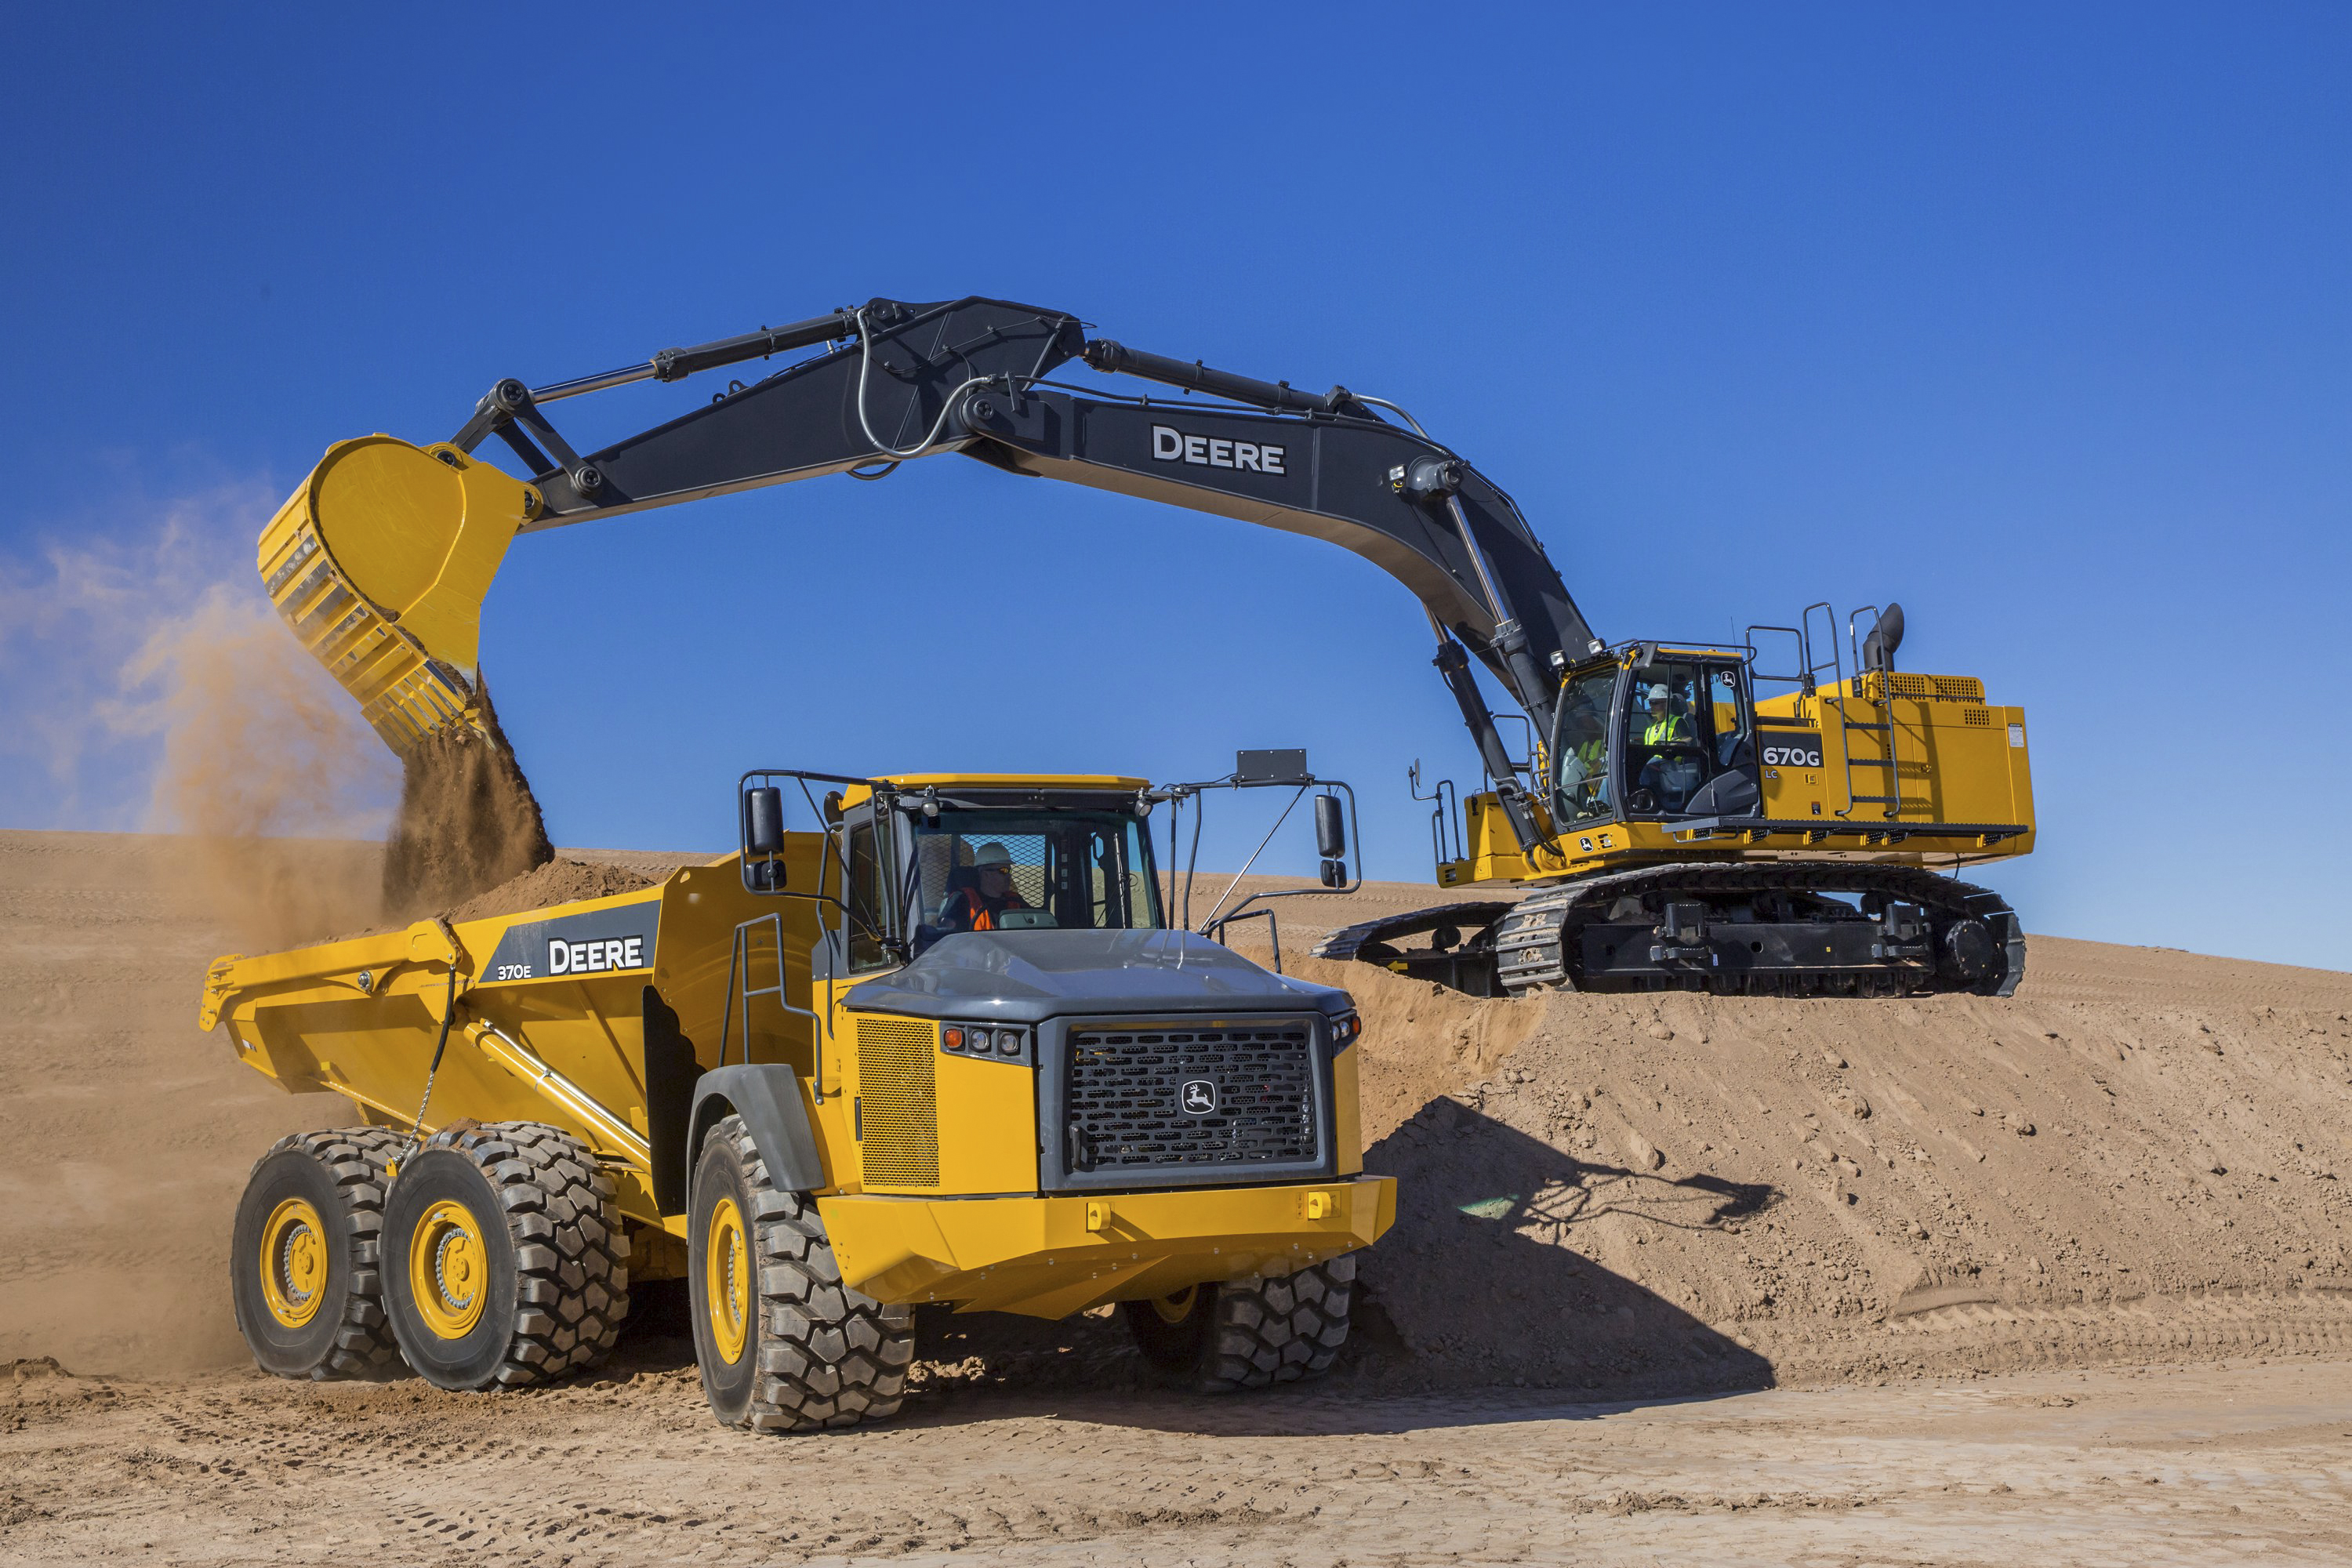 Excavator Safety Tips for Before, During, and After Operation